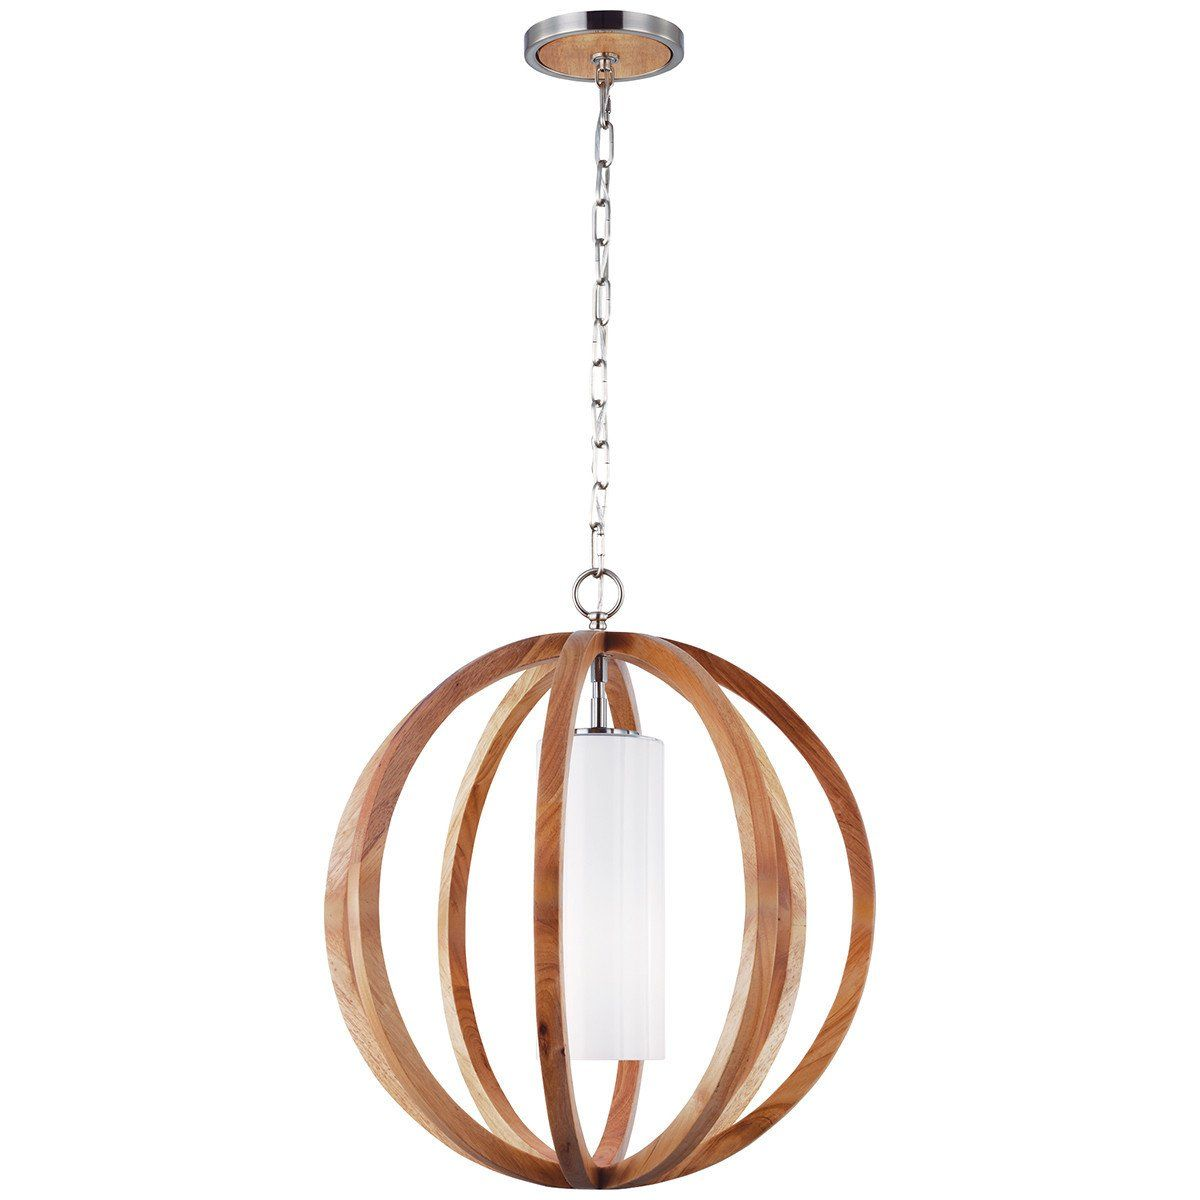 Feiss allier light pendant pendants lights and products